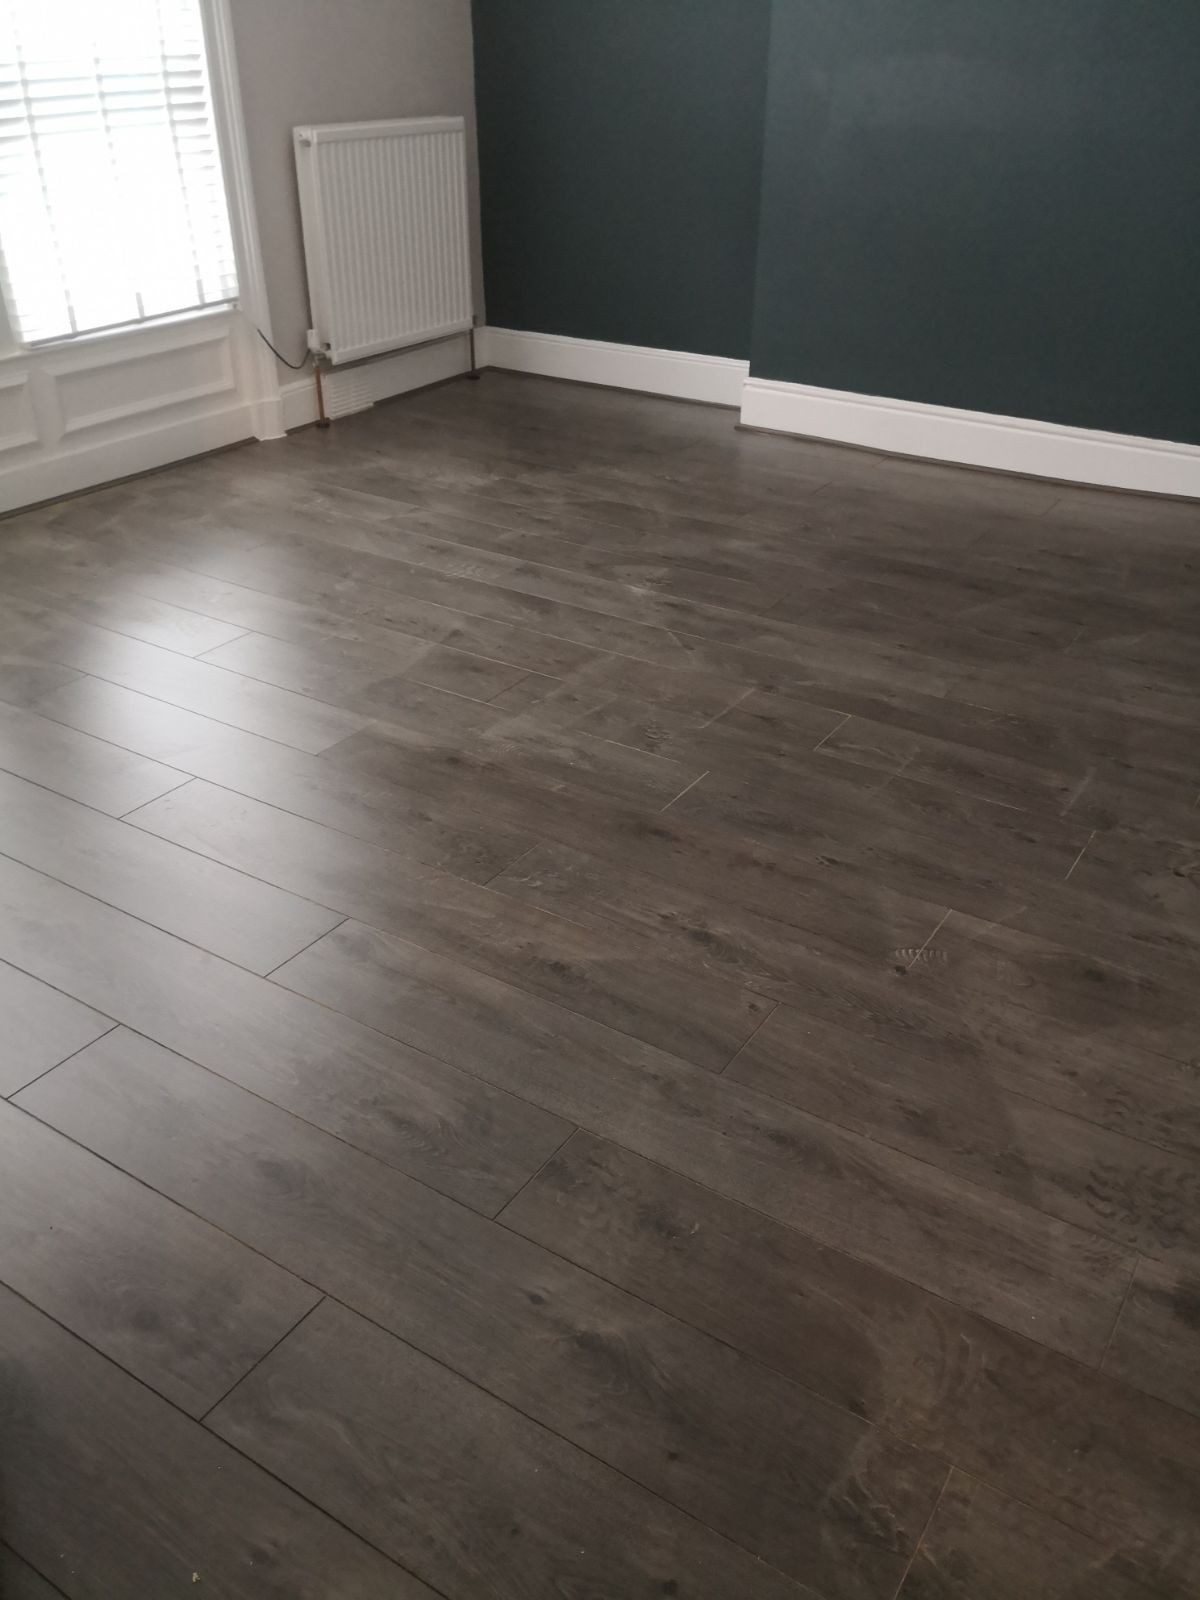 To Clean Laminate Floors >> Ground Floor Laminate Flooring Installation | The Carpet ...